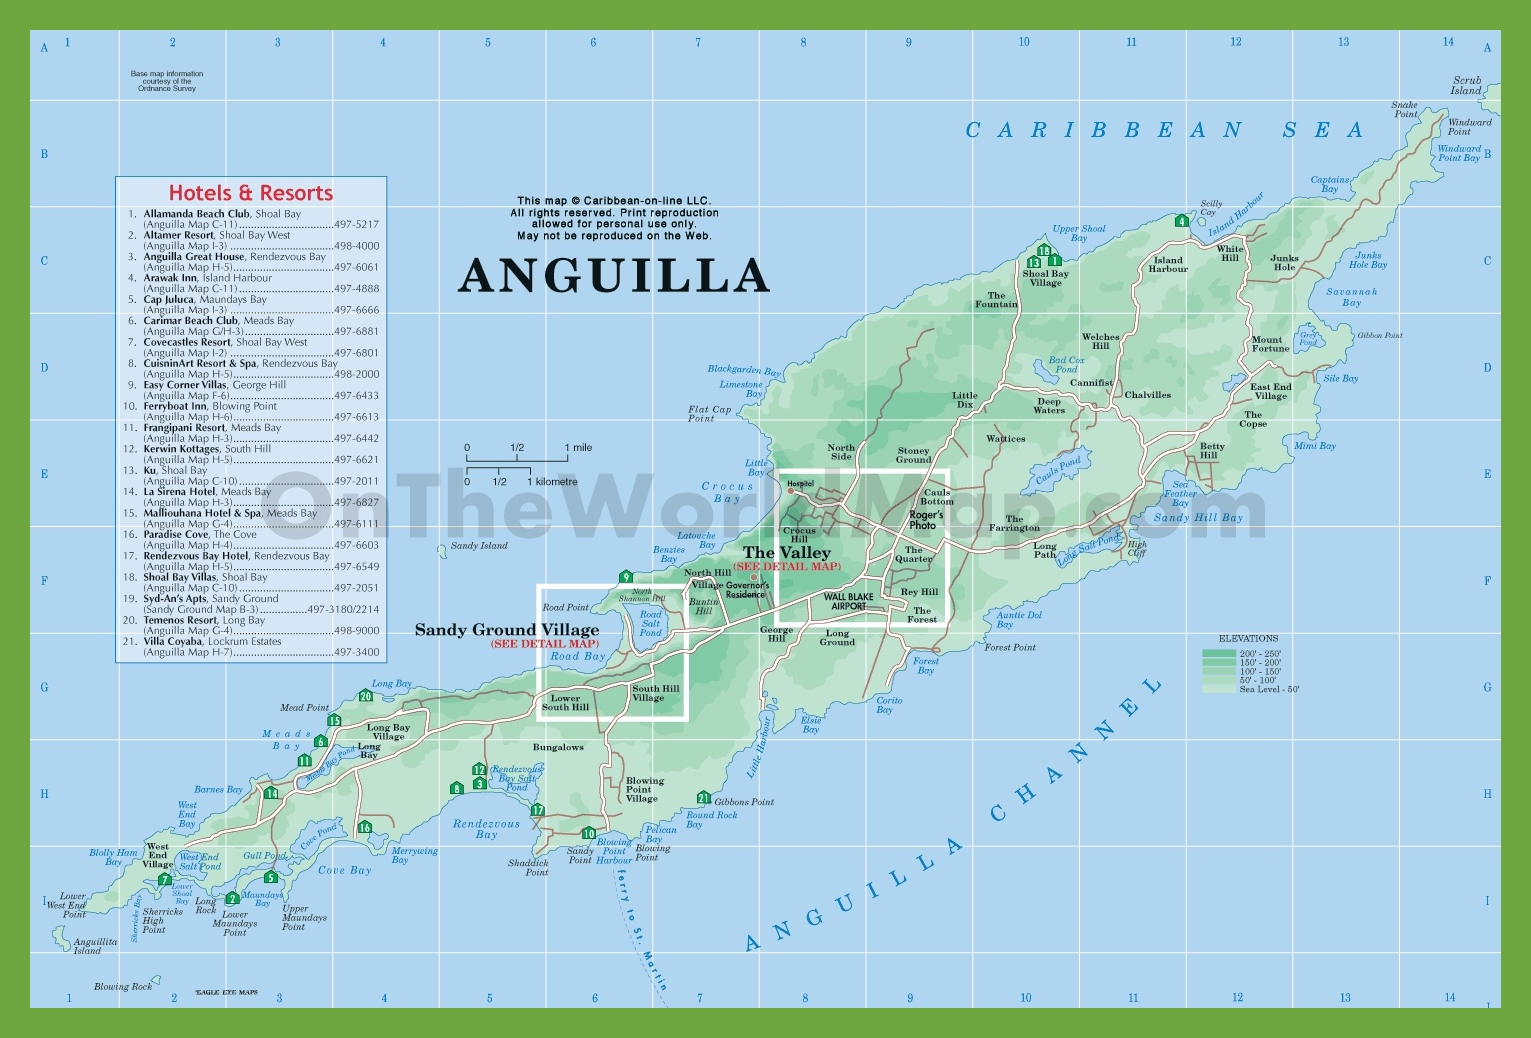 Map of Anguilla with hotels and resorts Anguilla Resorts Map on anguilla on world map, anguilla antigua map, anguilla beaches map, anguilla guide map, the valley anguilla map, anguilla luxury resorts, shoal bay anguilla map, anguilla airport, netherlands antilles map, banff hotels map, anguilla beach map, sandy ground anguilla map, meads bay resort map, bali resort map, anguilla beach party, greater antilles islands map, atlantis resort map, anguilla west indies map, anguilla island map, viceroy anguilla map,